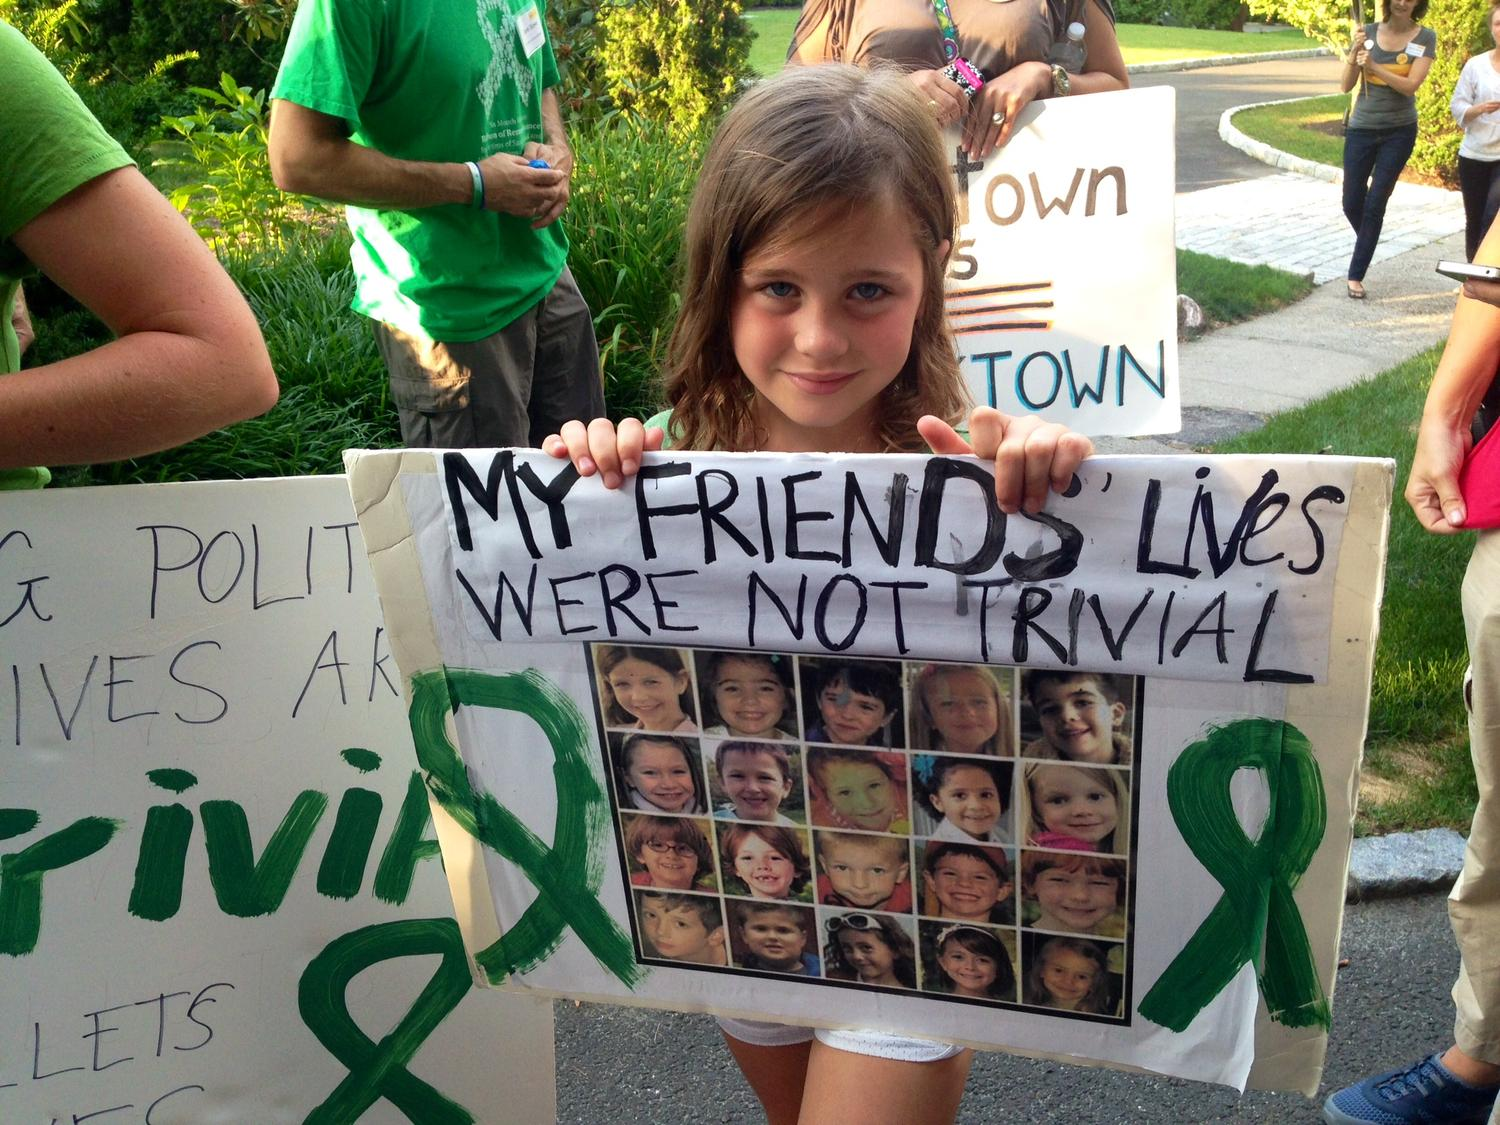 Marie Morosky, 7, said five of her friends died in the Sandy Hook Elementary massacre. (Sarah Gonzalez/WNYC)